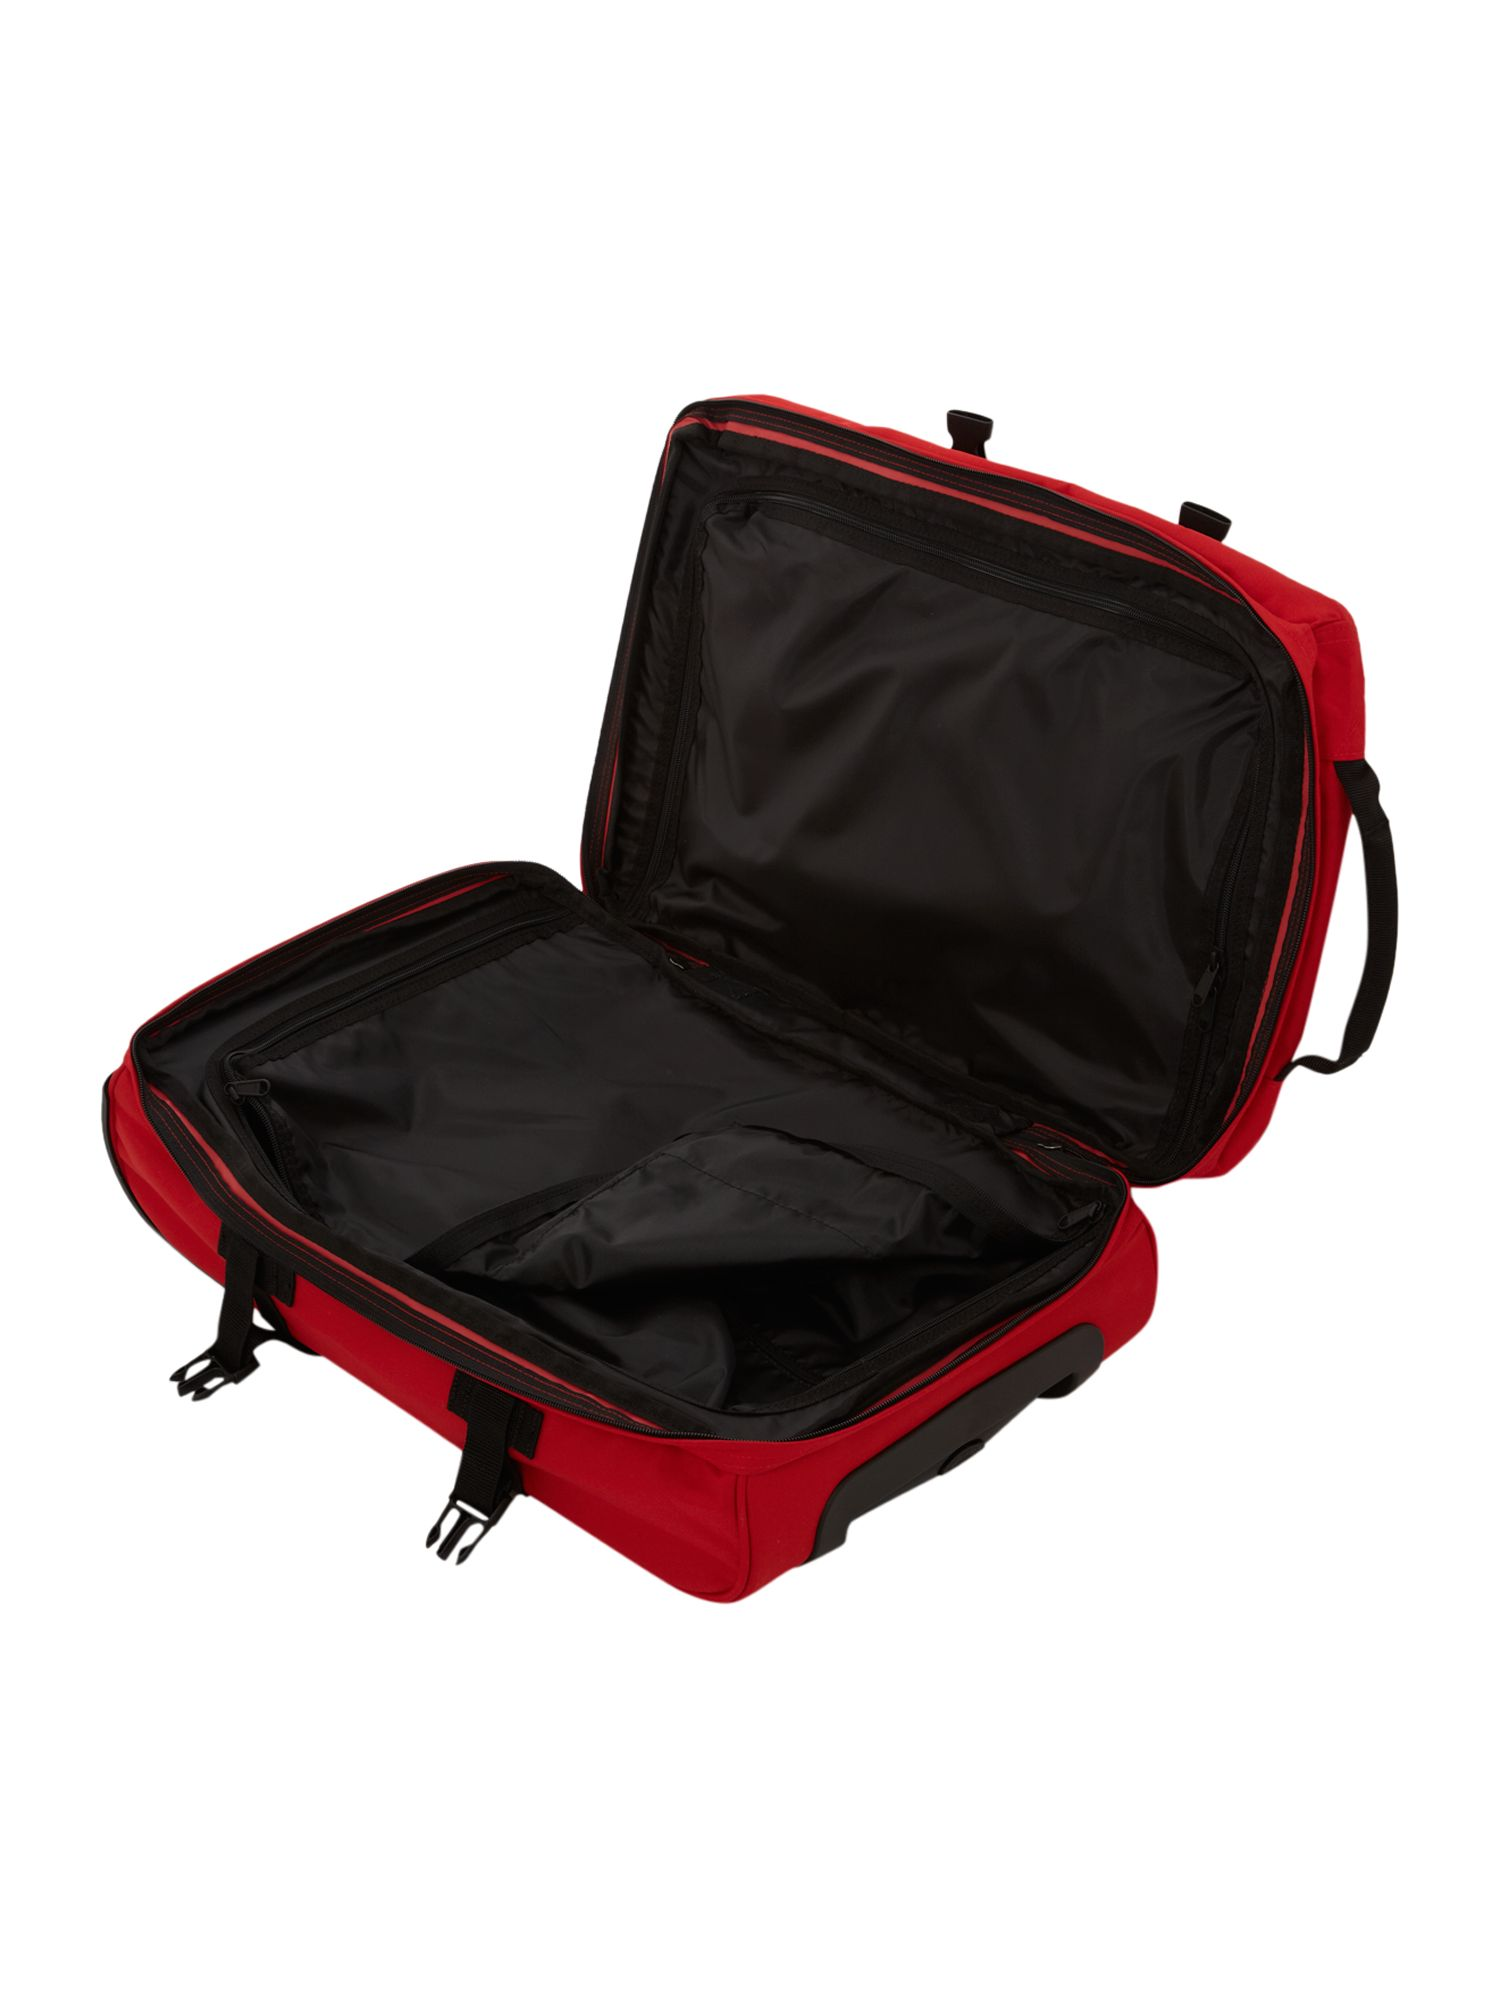 Transfer Small Red Suitcase